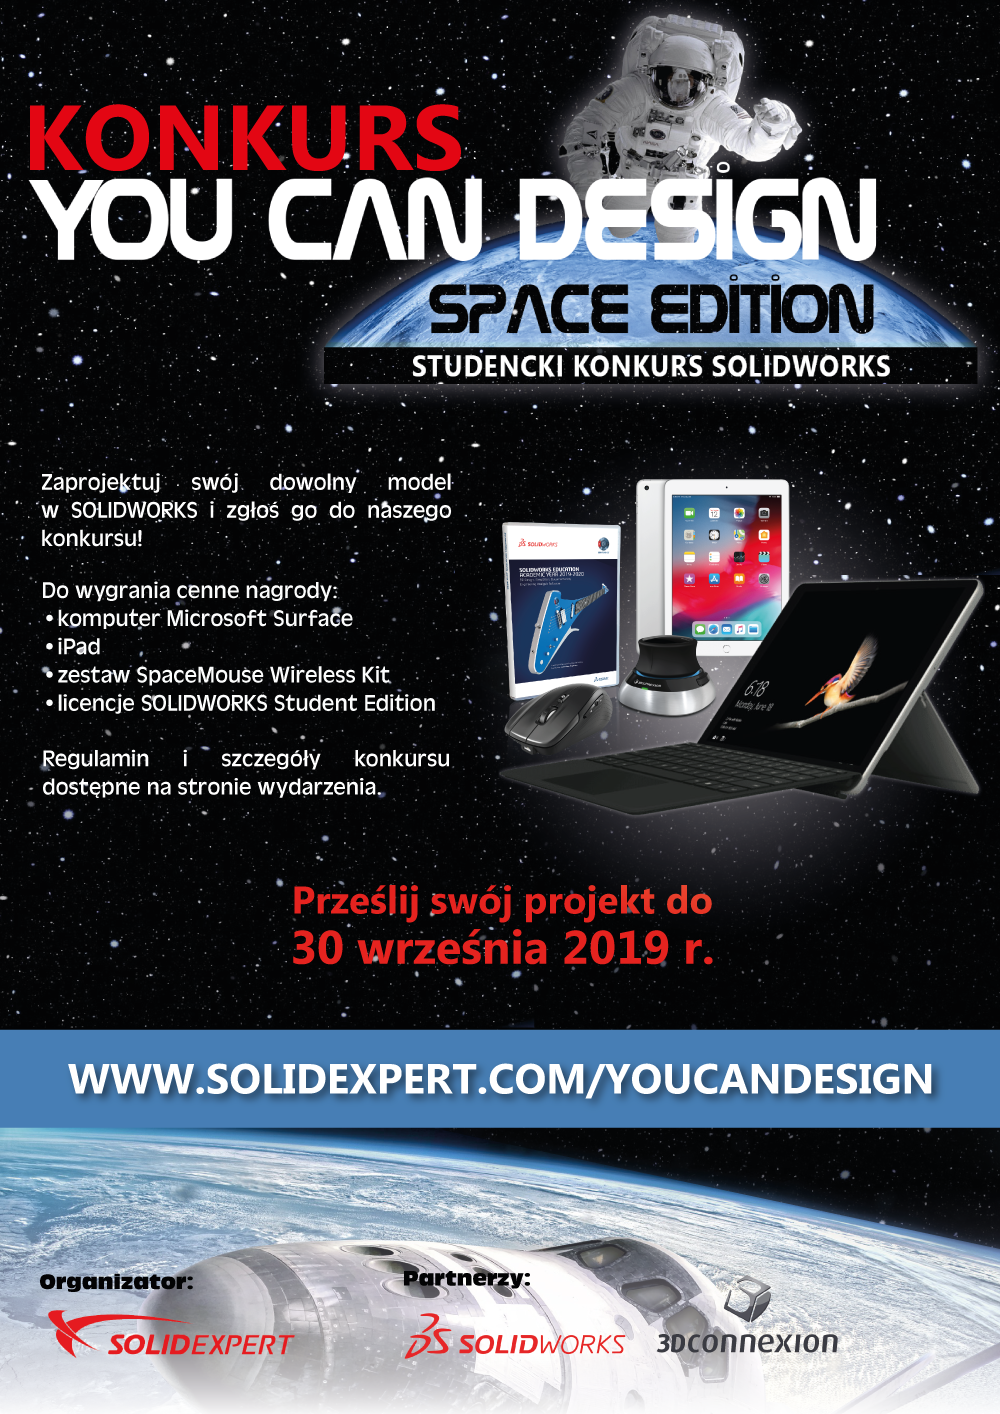 ycd-space-edition-plakat.png